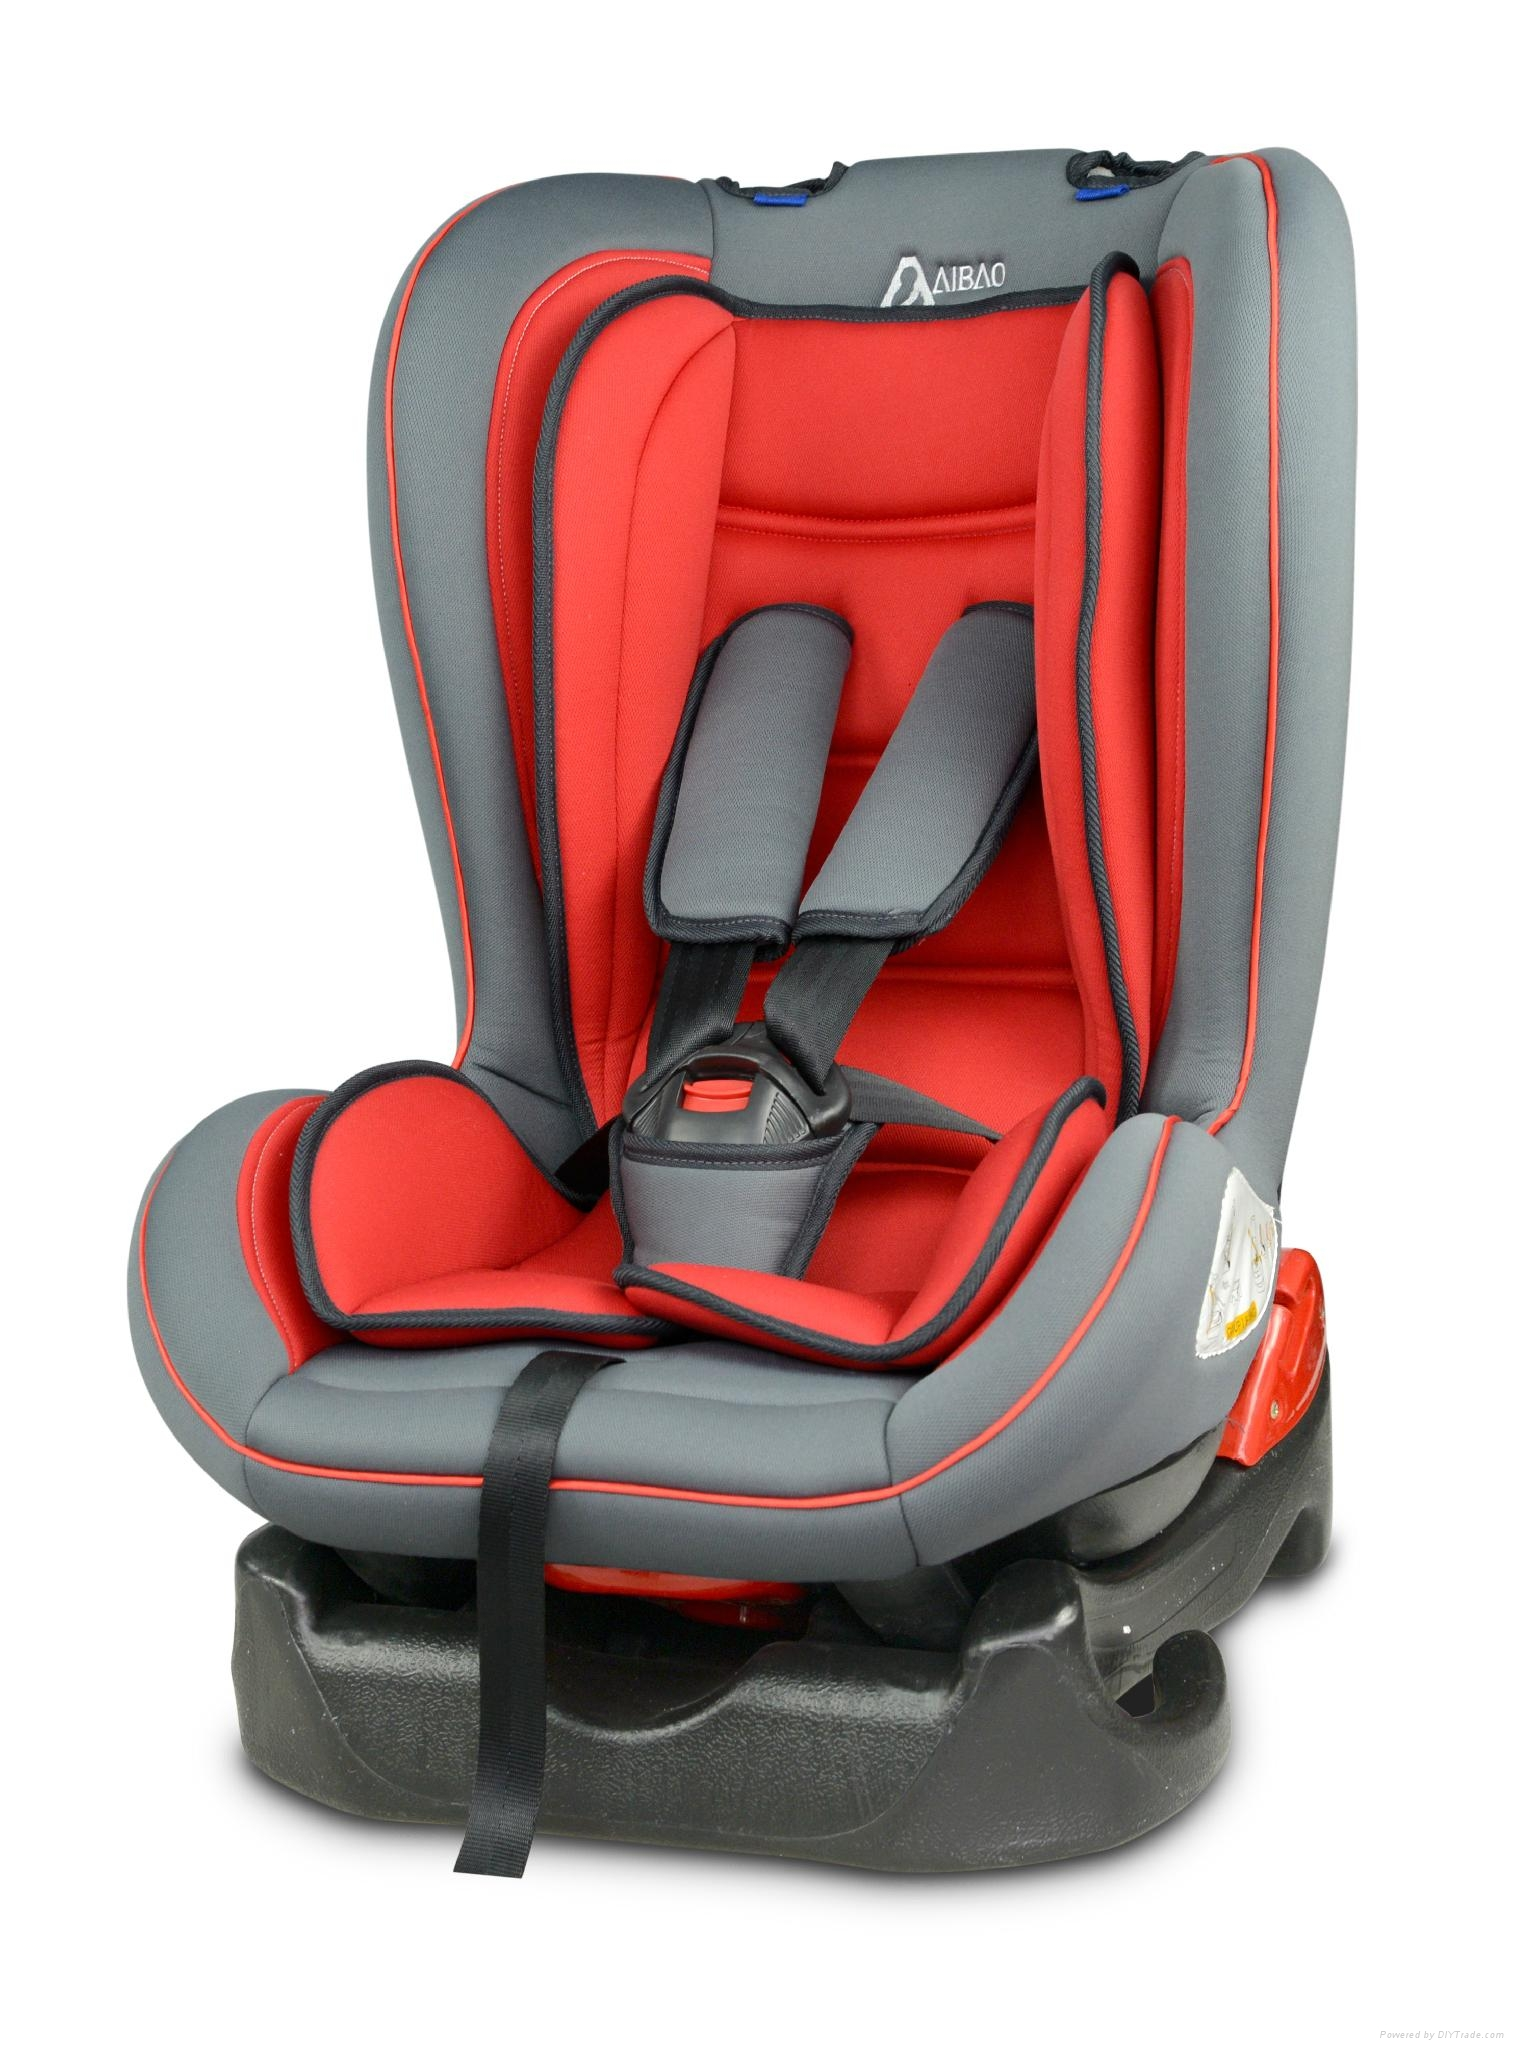 baby car seat - YB101A - AIBAO (China Manufacturer) - Babies - Home